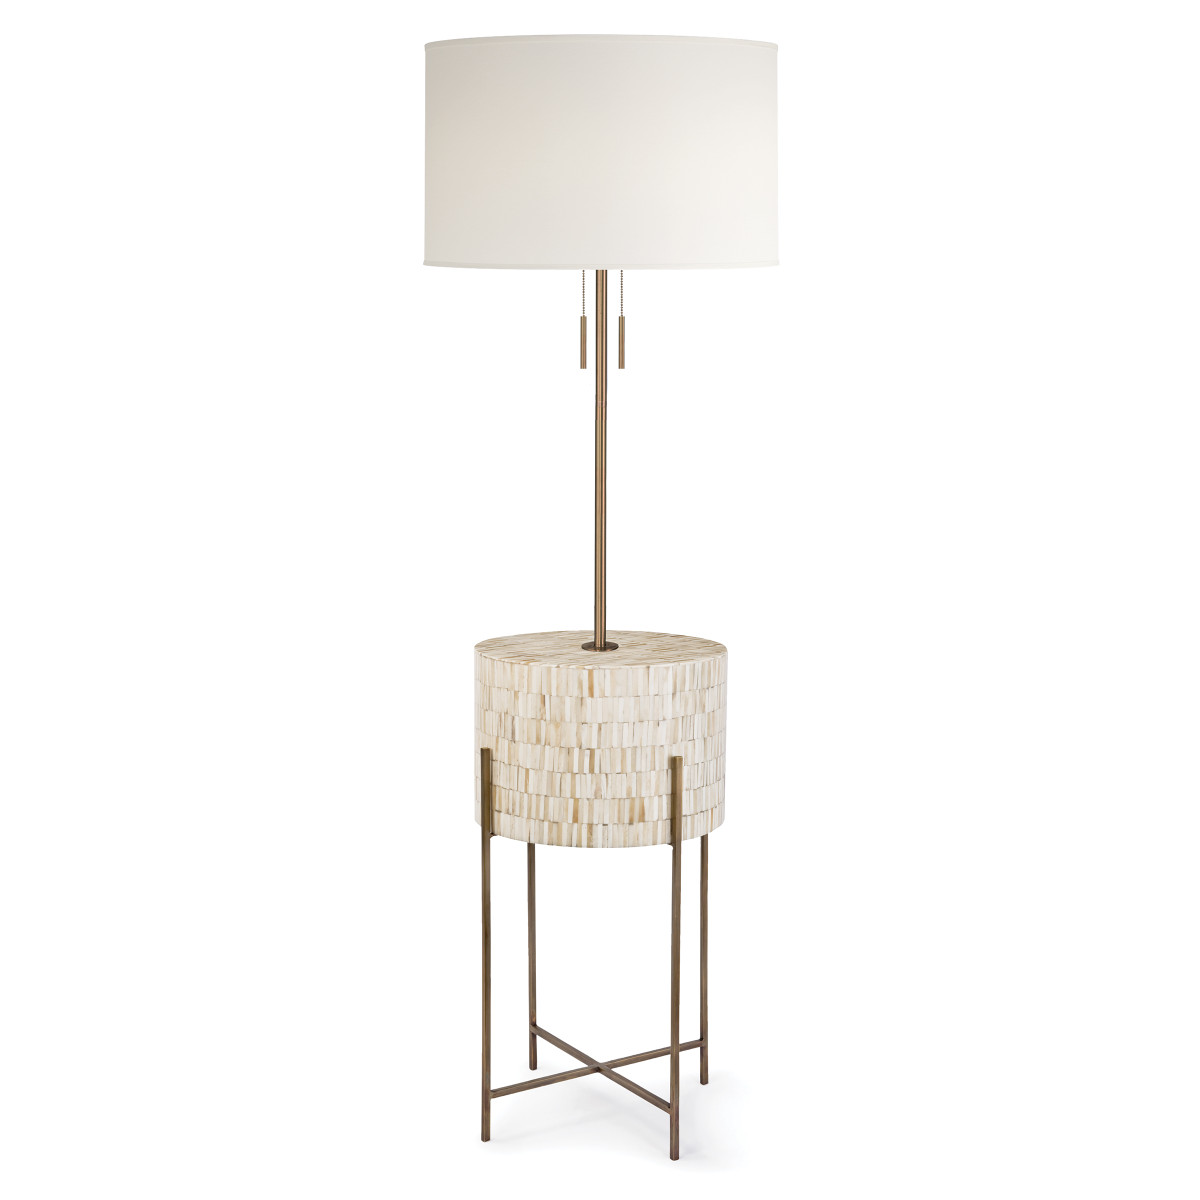 Inlaid Bone Floor Lamp-$1,125.00